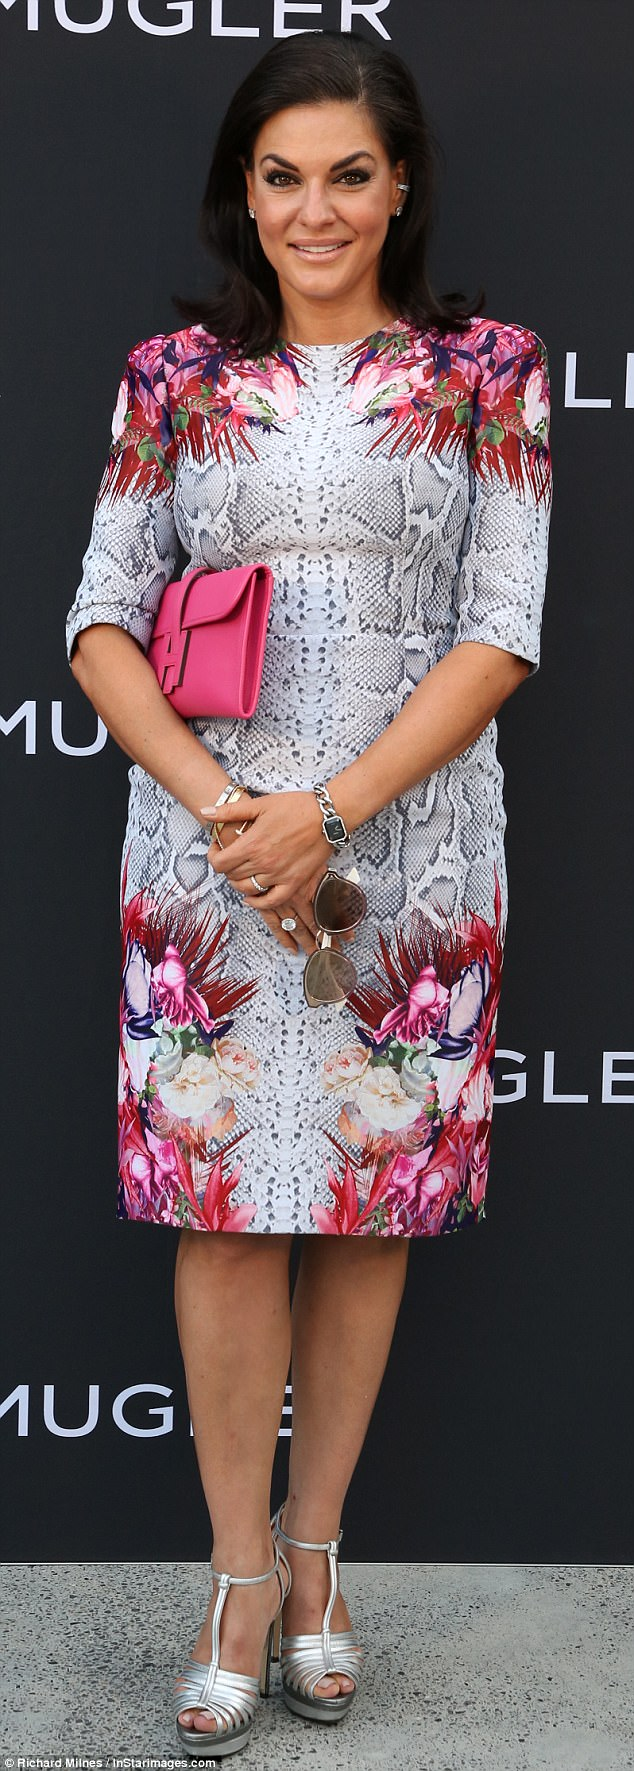 Nicole O'Neil at the Mugler Fragrance Launch.jpg